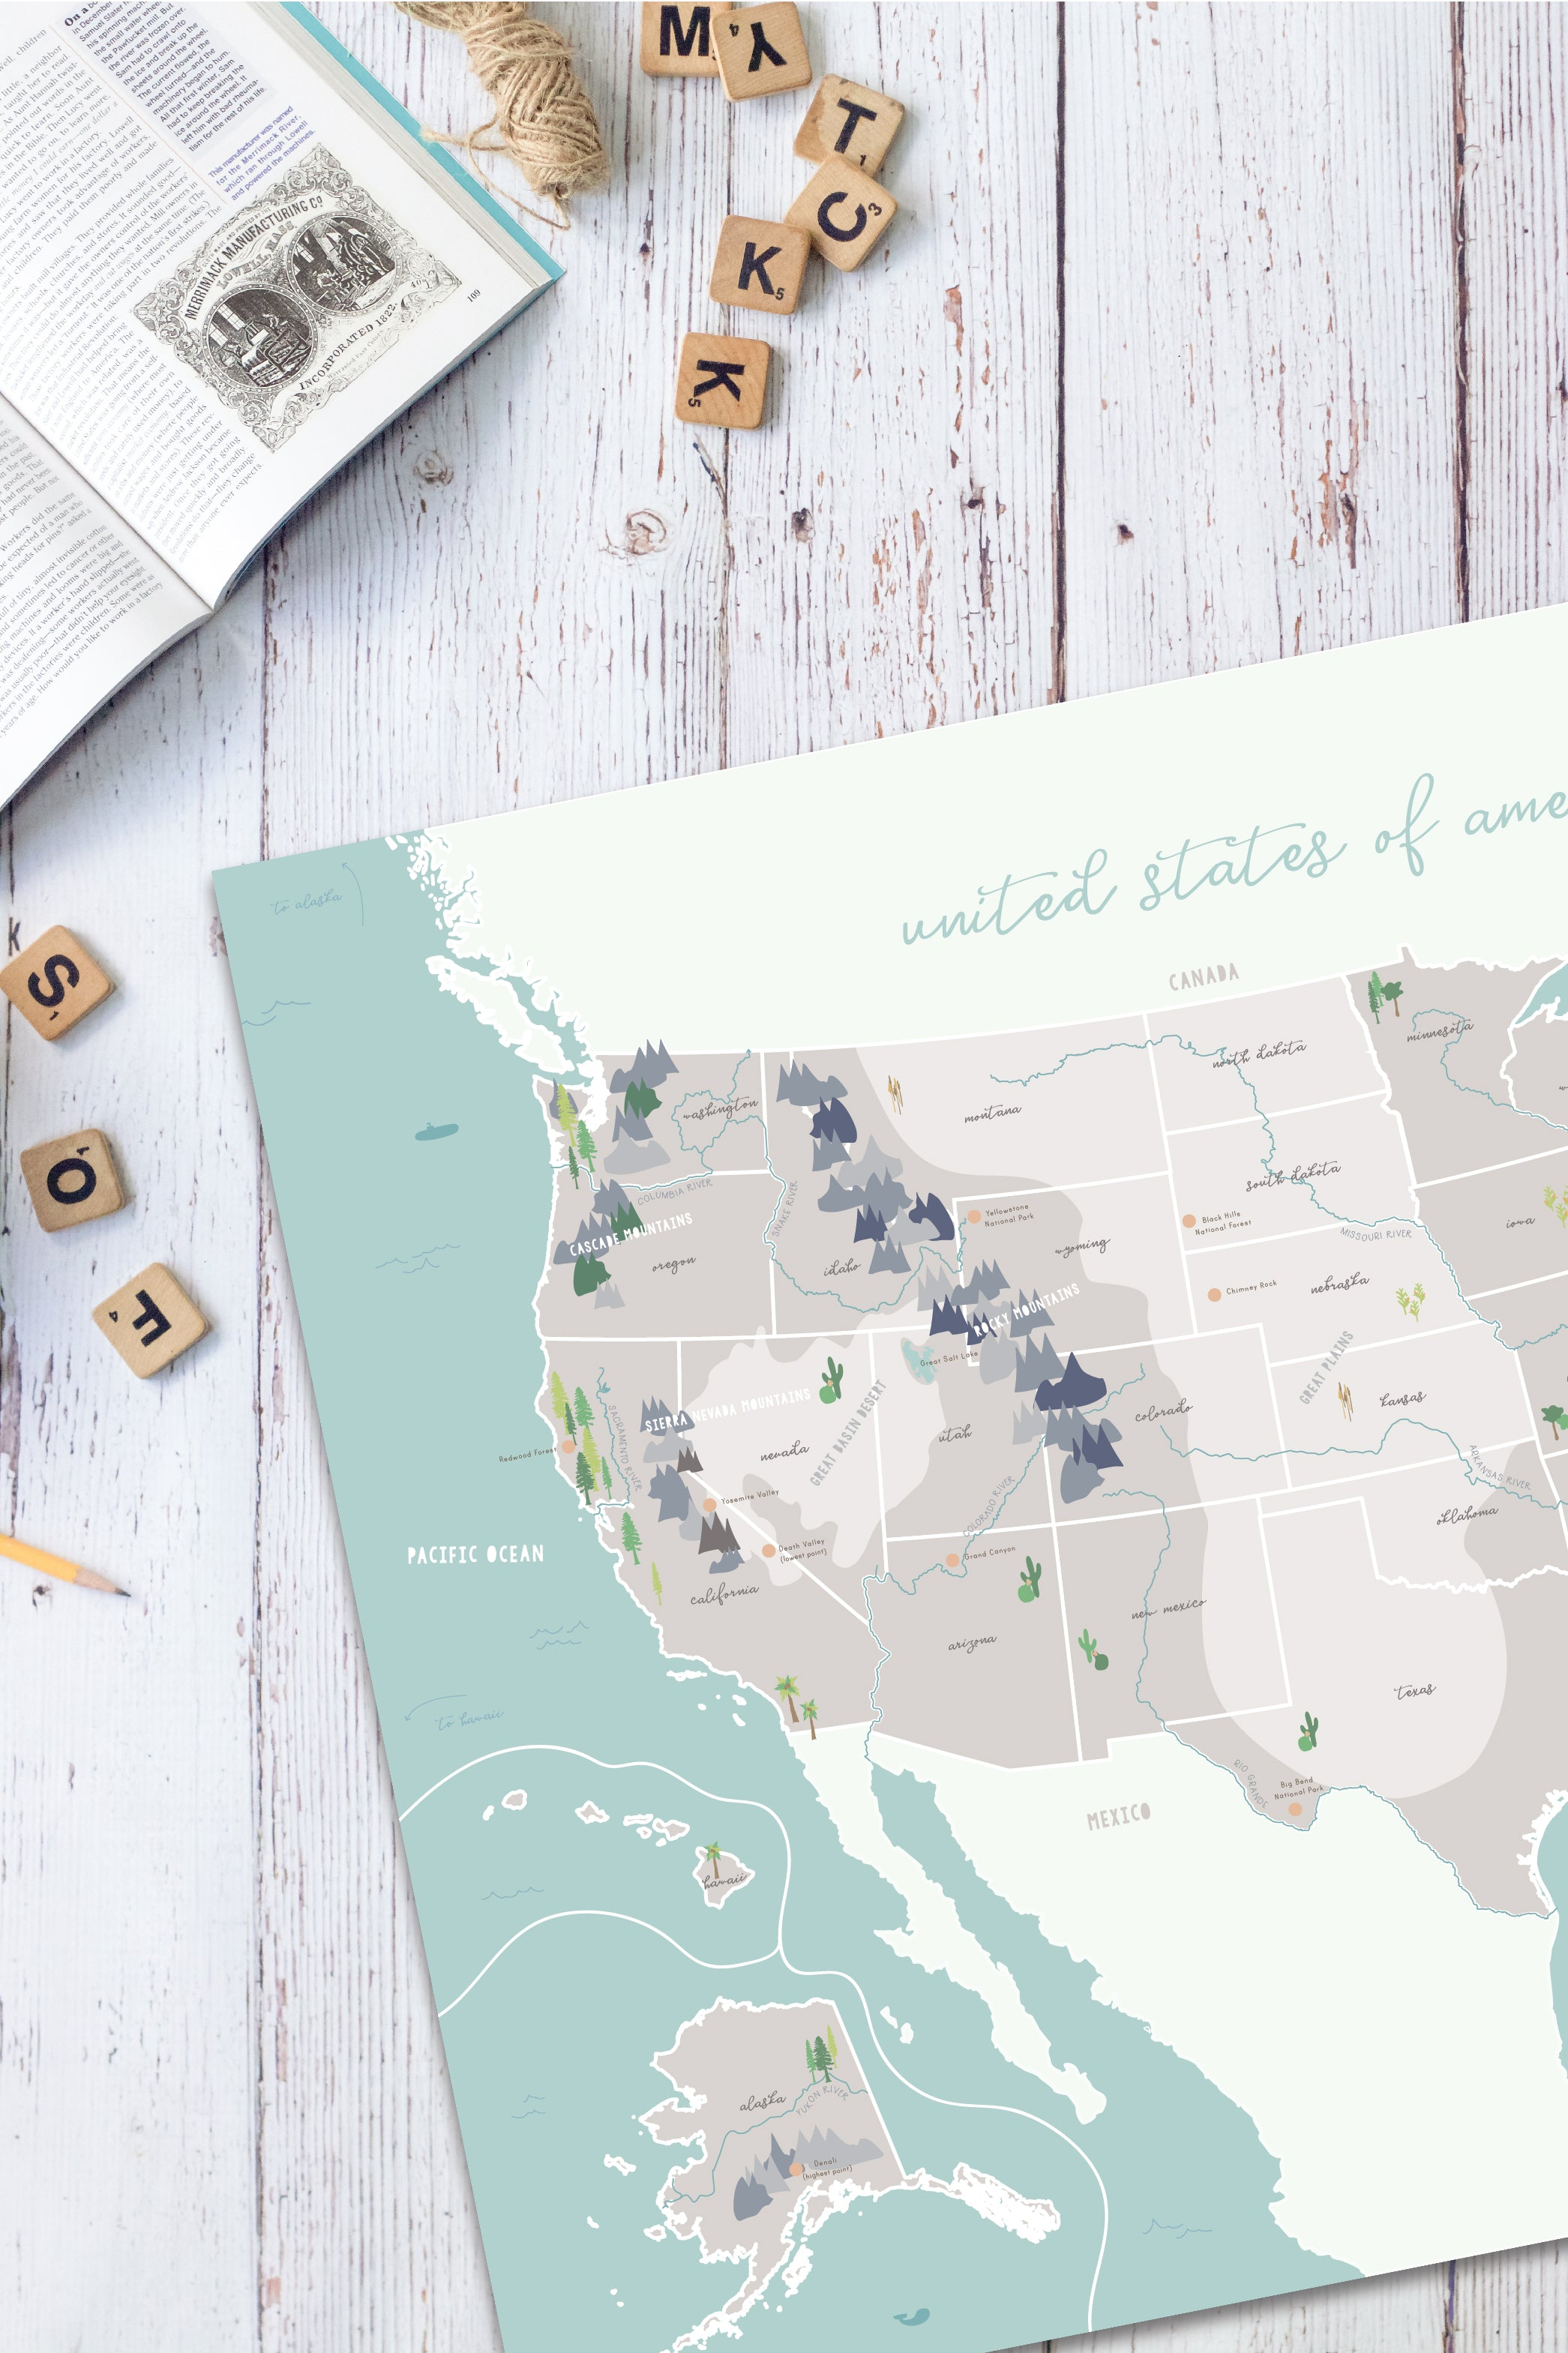 Illustrated United States Map with Physical Features | Pretty Nerdy Press